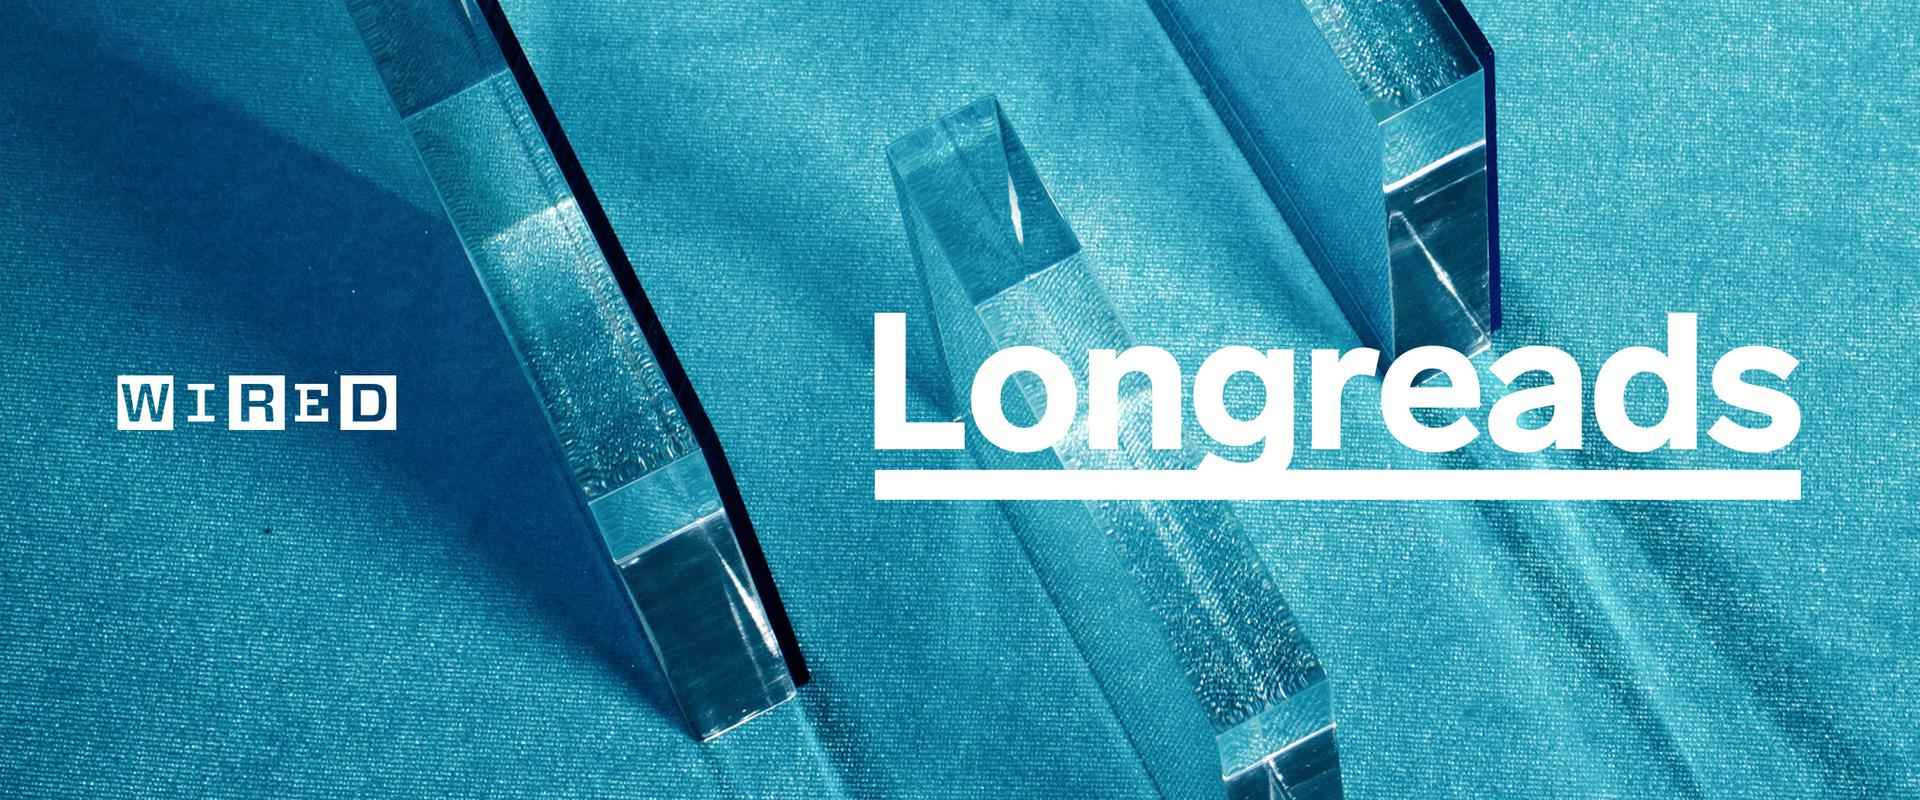 (image) WIRED Longreads Logo